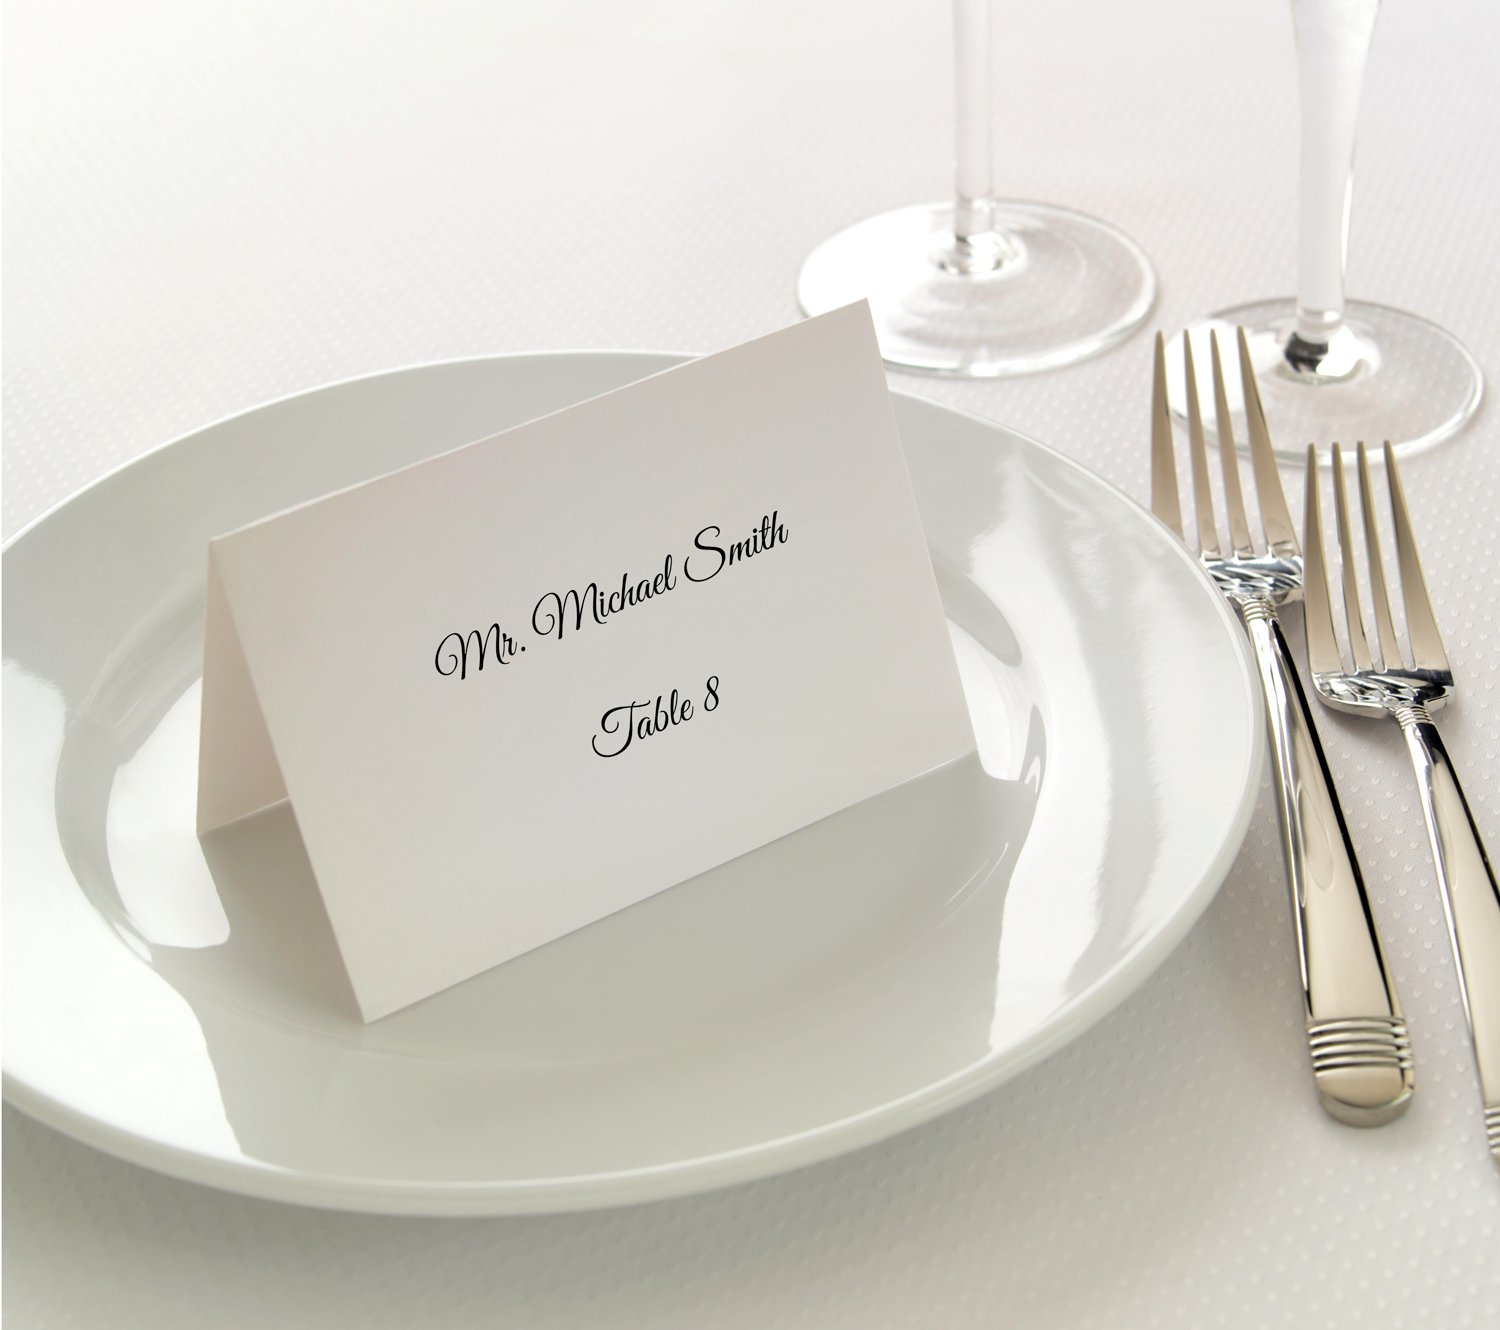 Small White Place Cards - Printable Tent Cards for Inkjet & Laser Printers - 200 Tent Cards